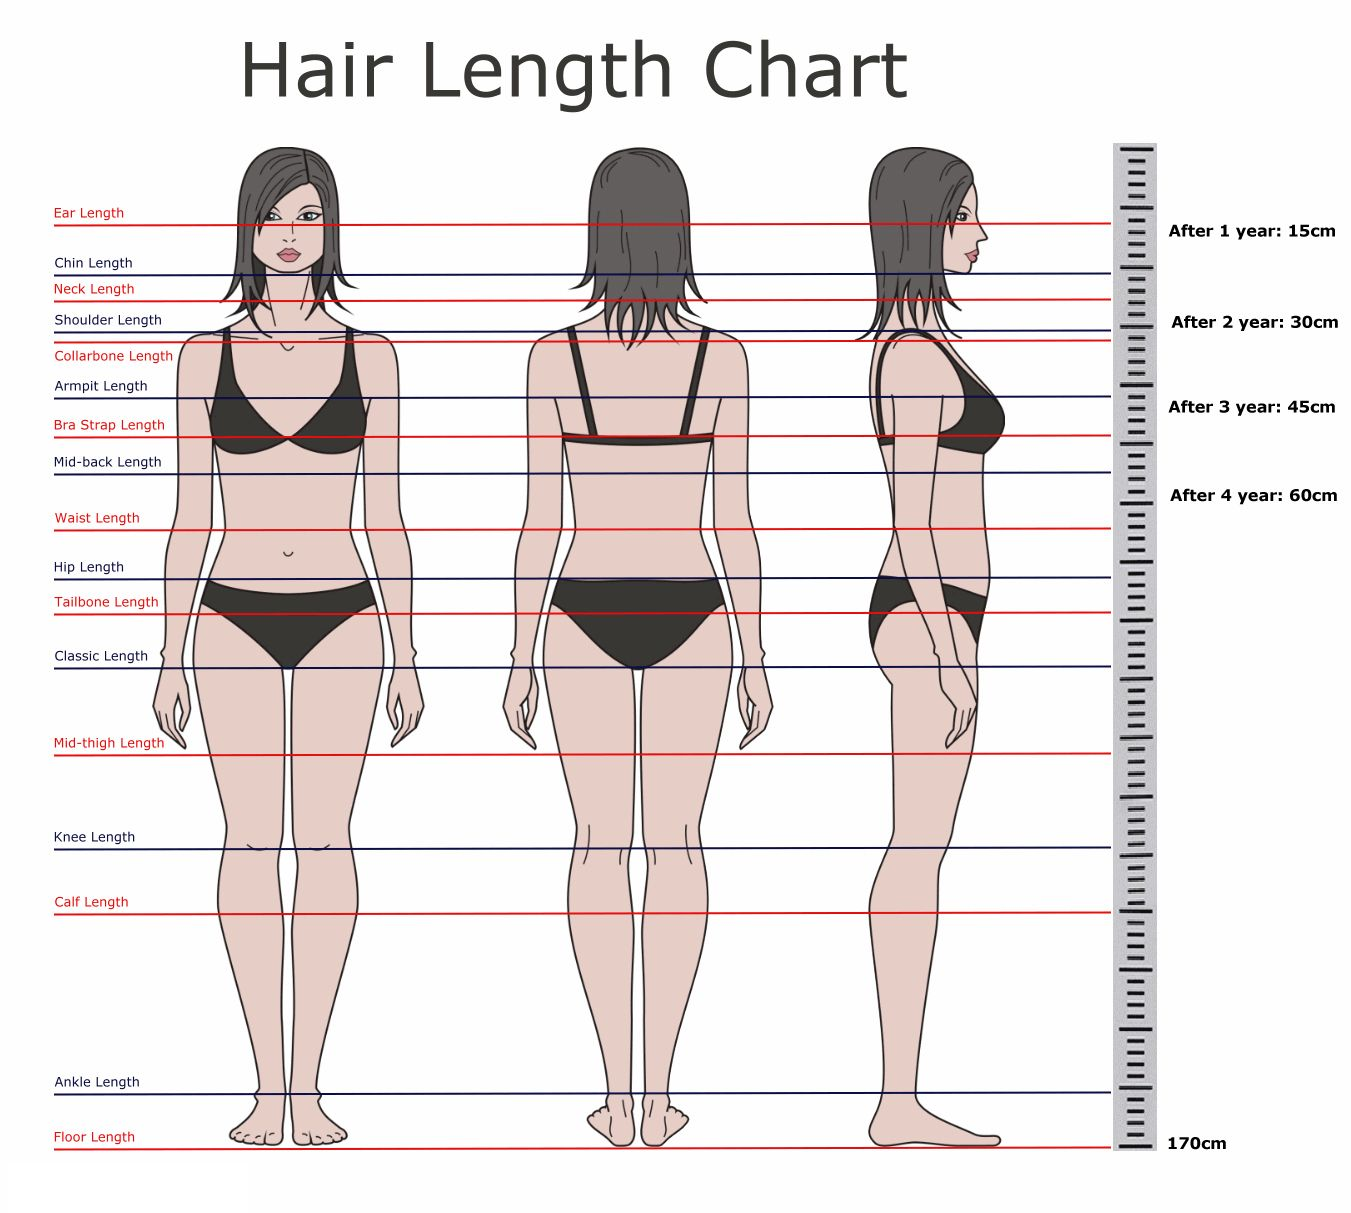 Hair length chart also best images on pinterest hairstyle ideas rh